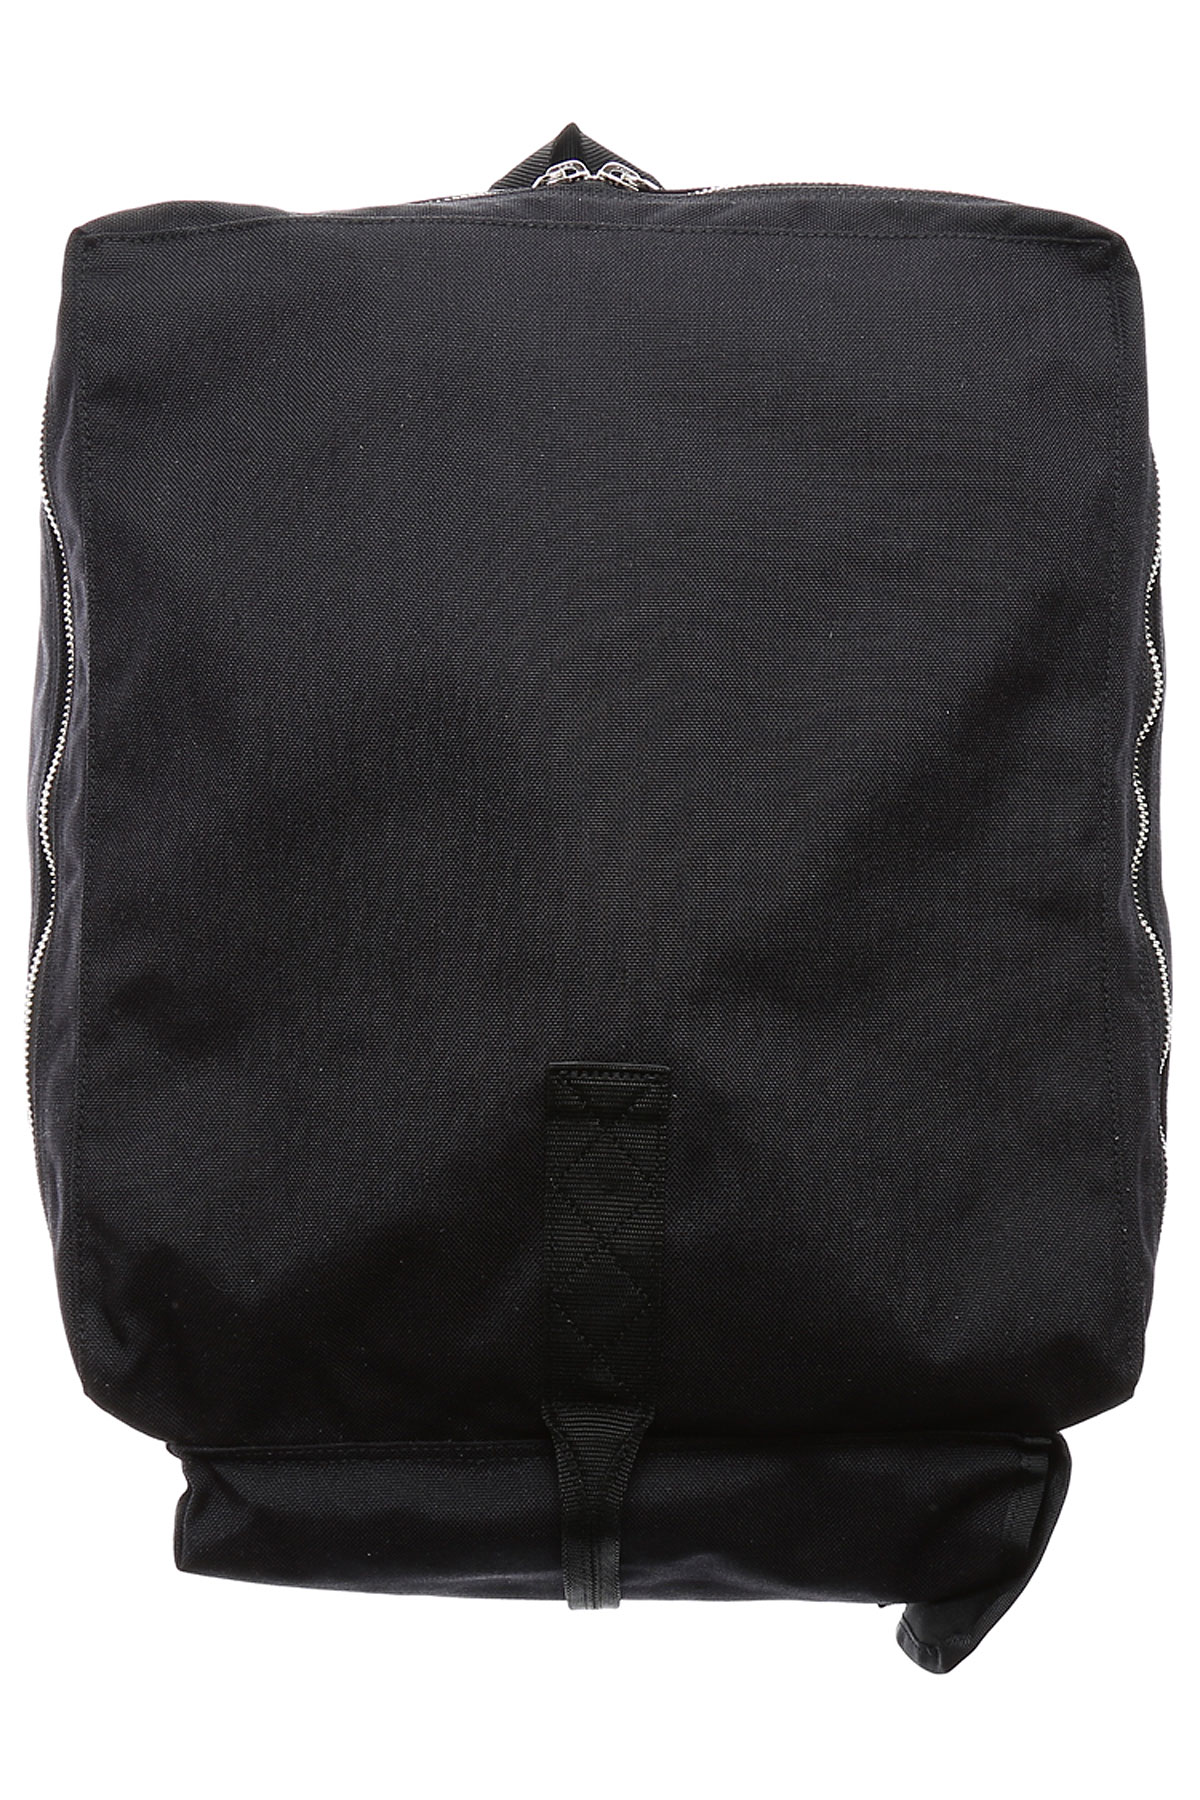 Comme des Garcons Backpack for Men On Sale, Black, Canvas, 2019